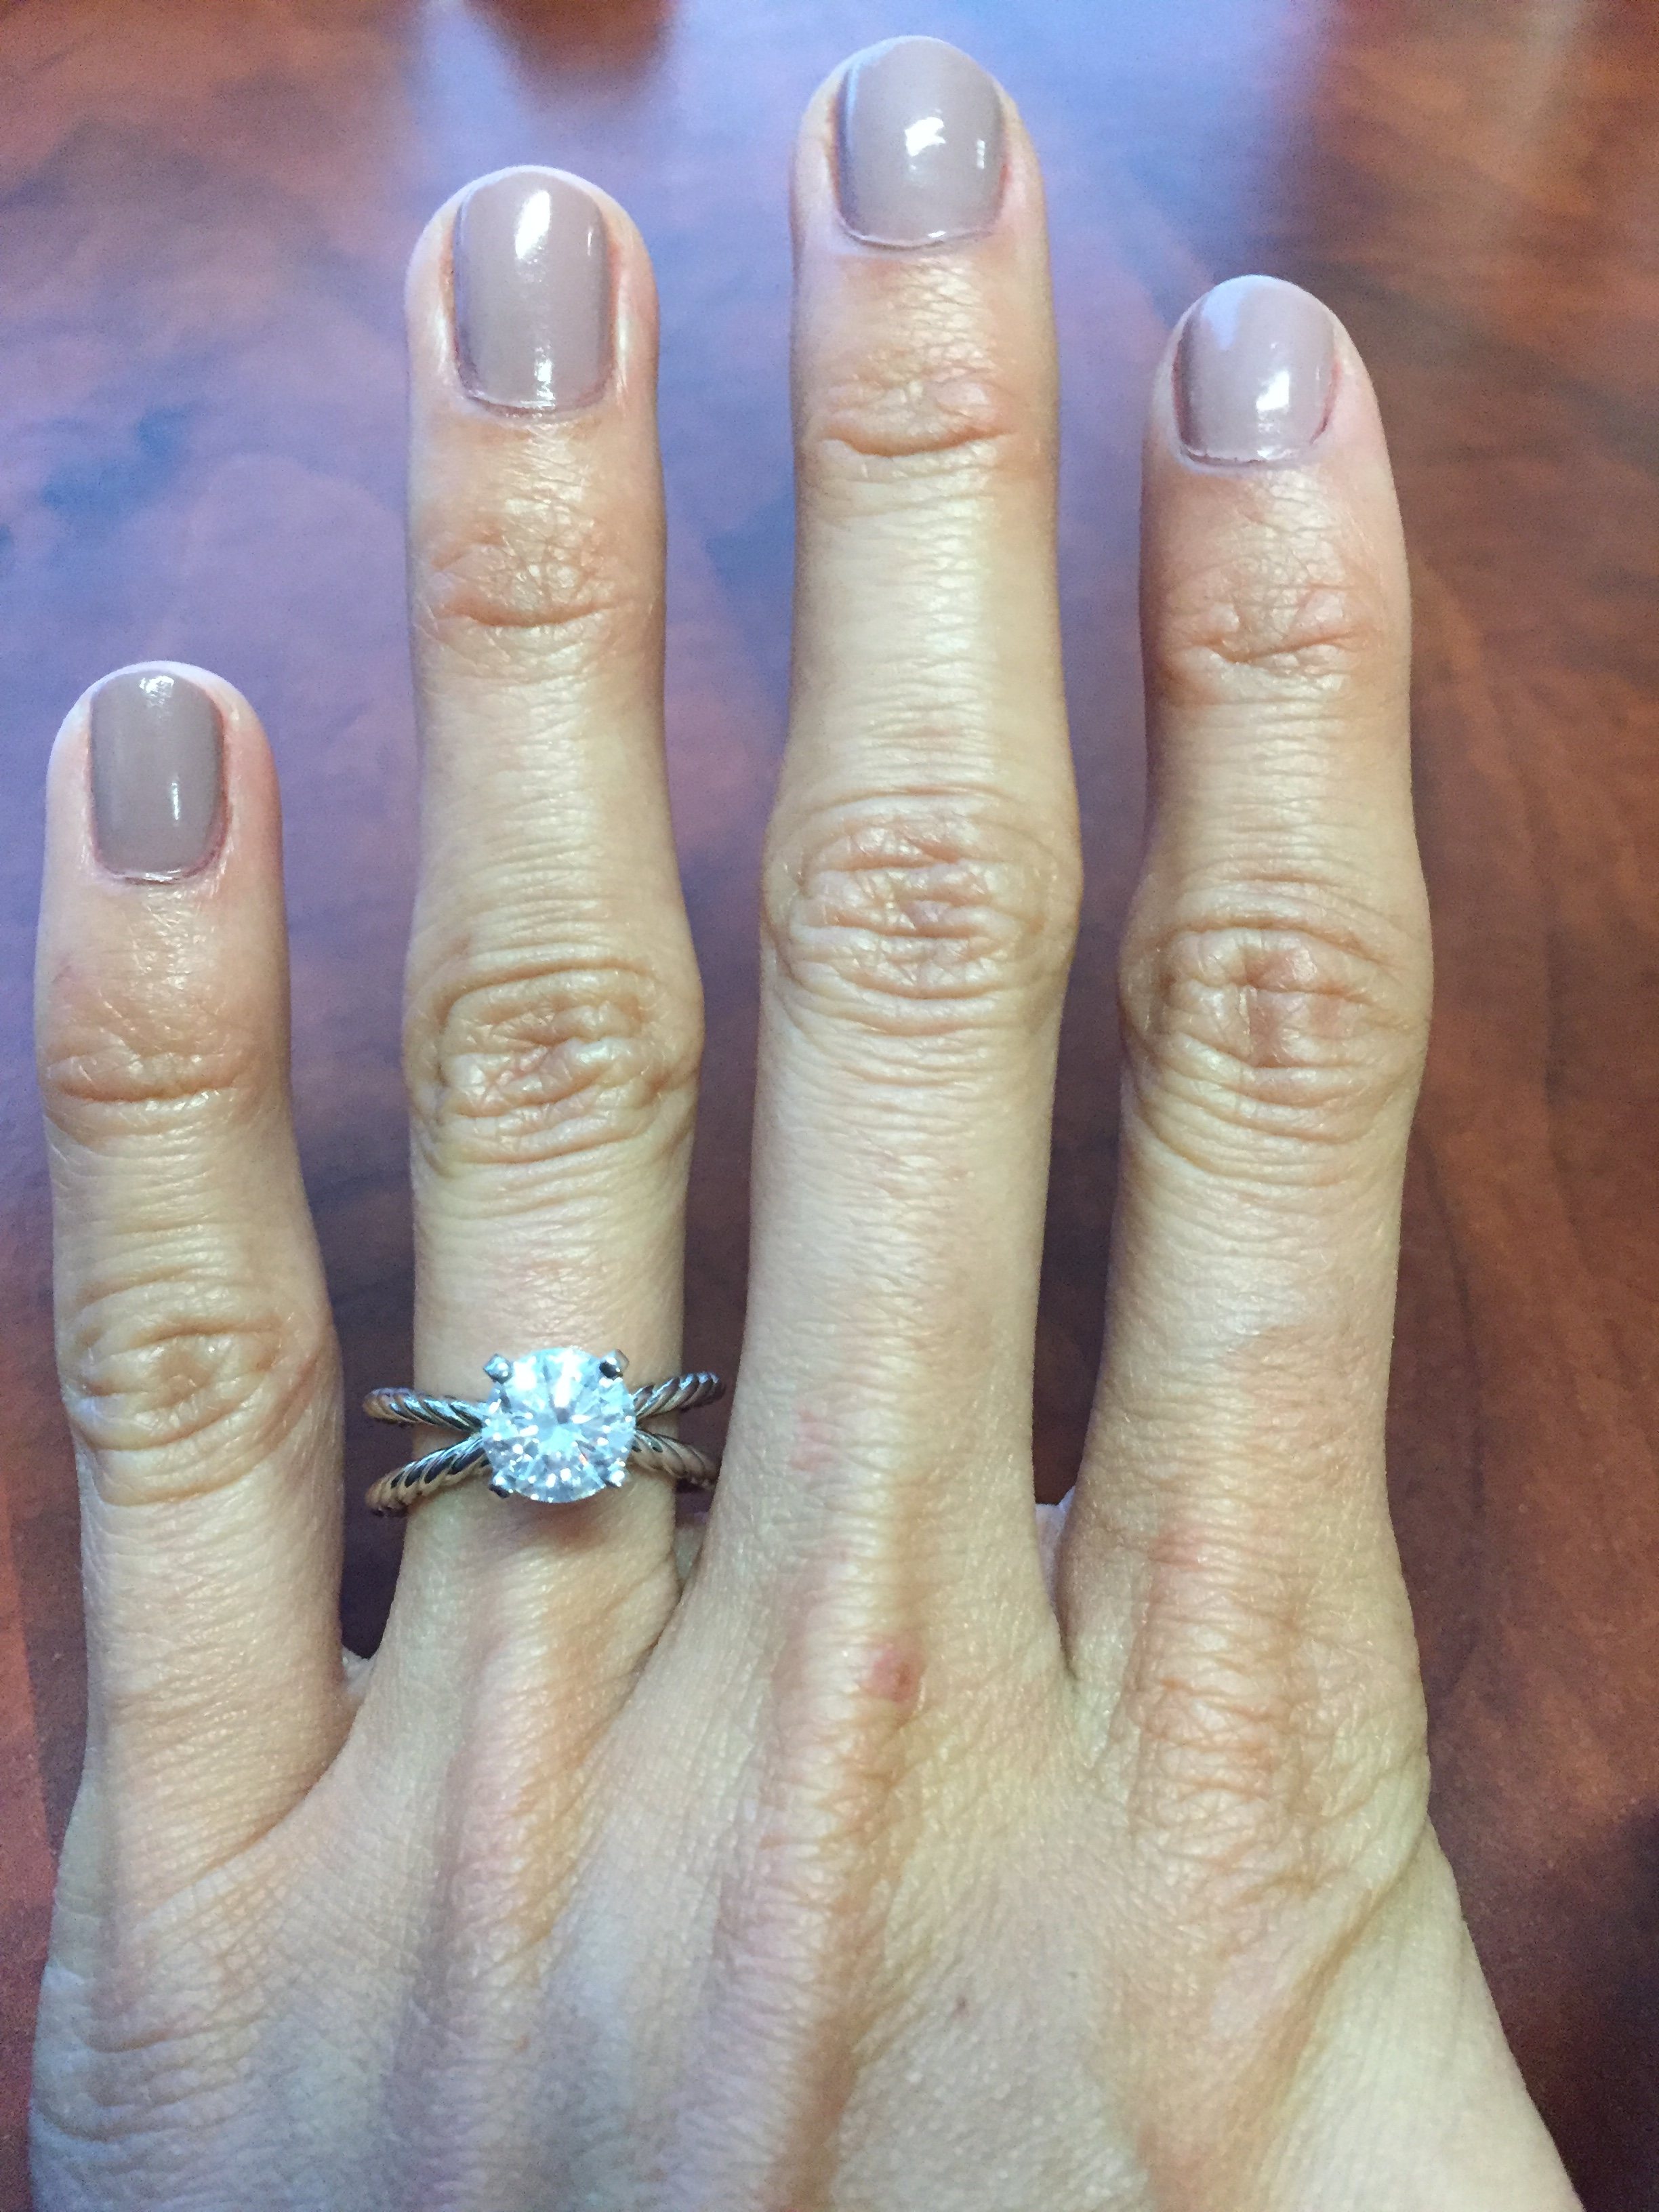 david yurman engagement rings anyone david yurman wedding rings wholesale pricing and she had the diamond set in a band by Adwar Casting in New York It s not the same as DY but it s similar and the price was right